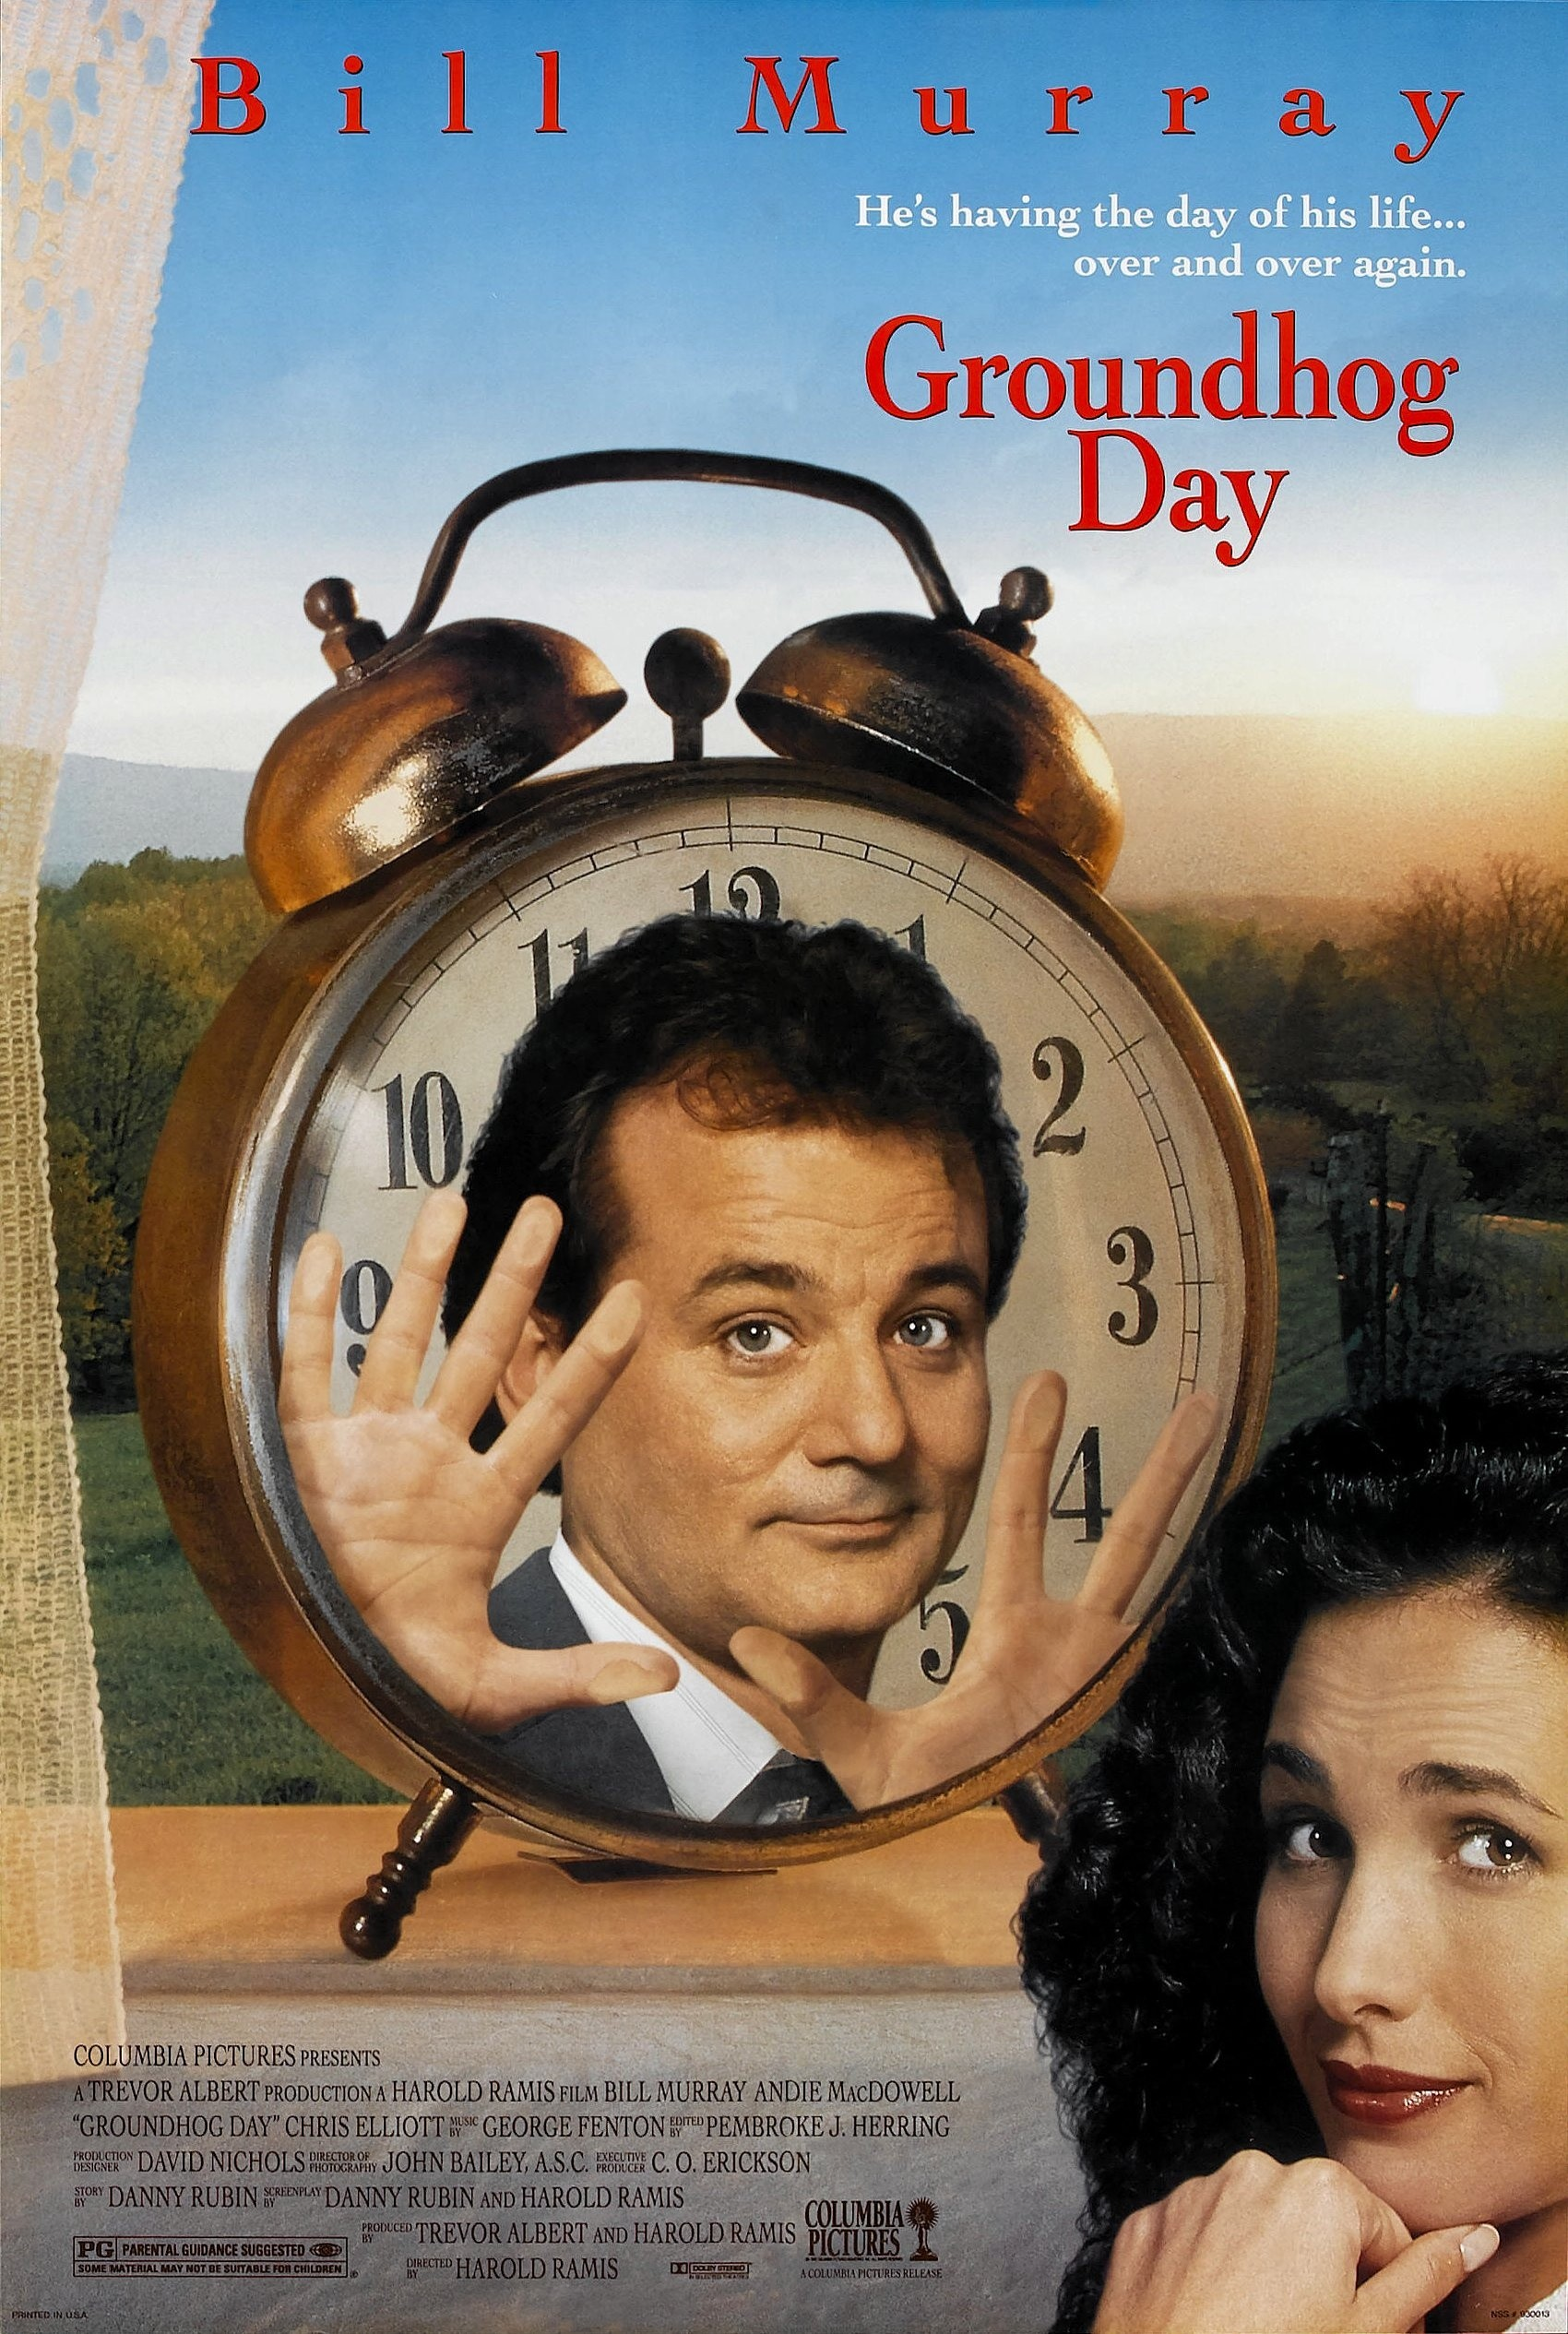 GROUNDHOG DAY on GROUNDHOG DAY